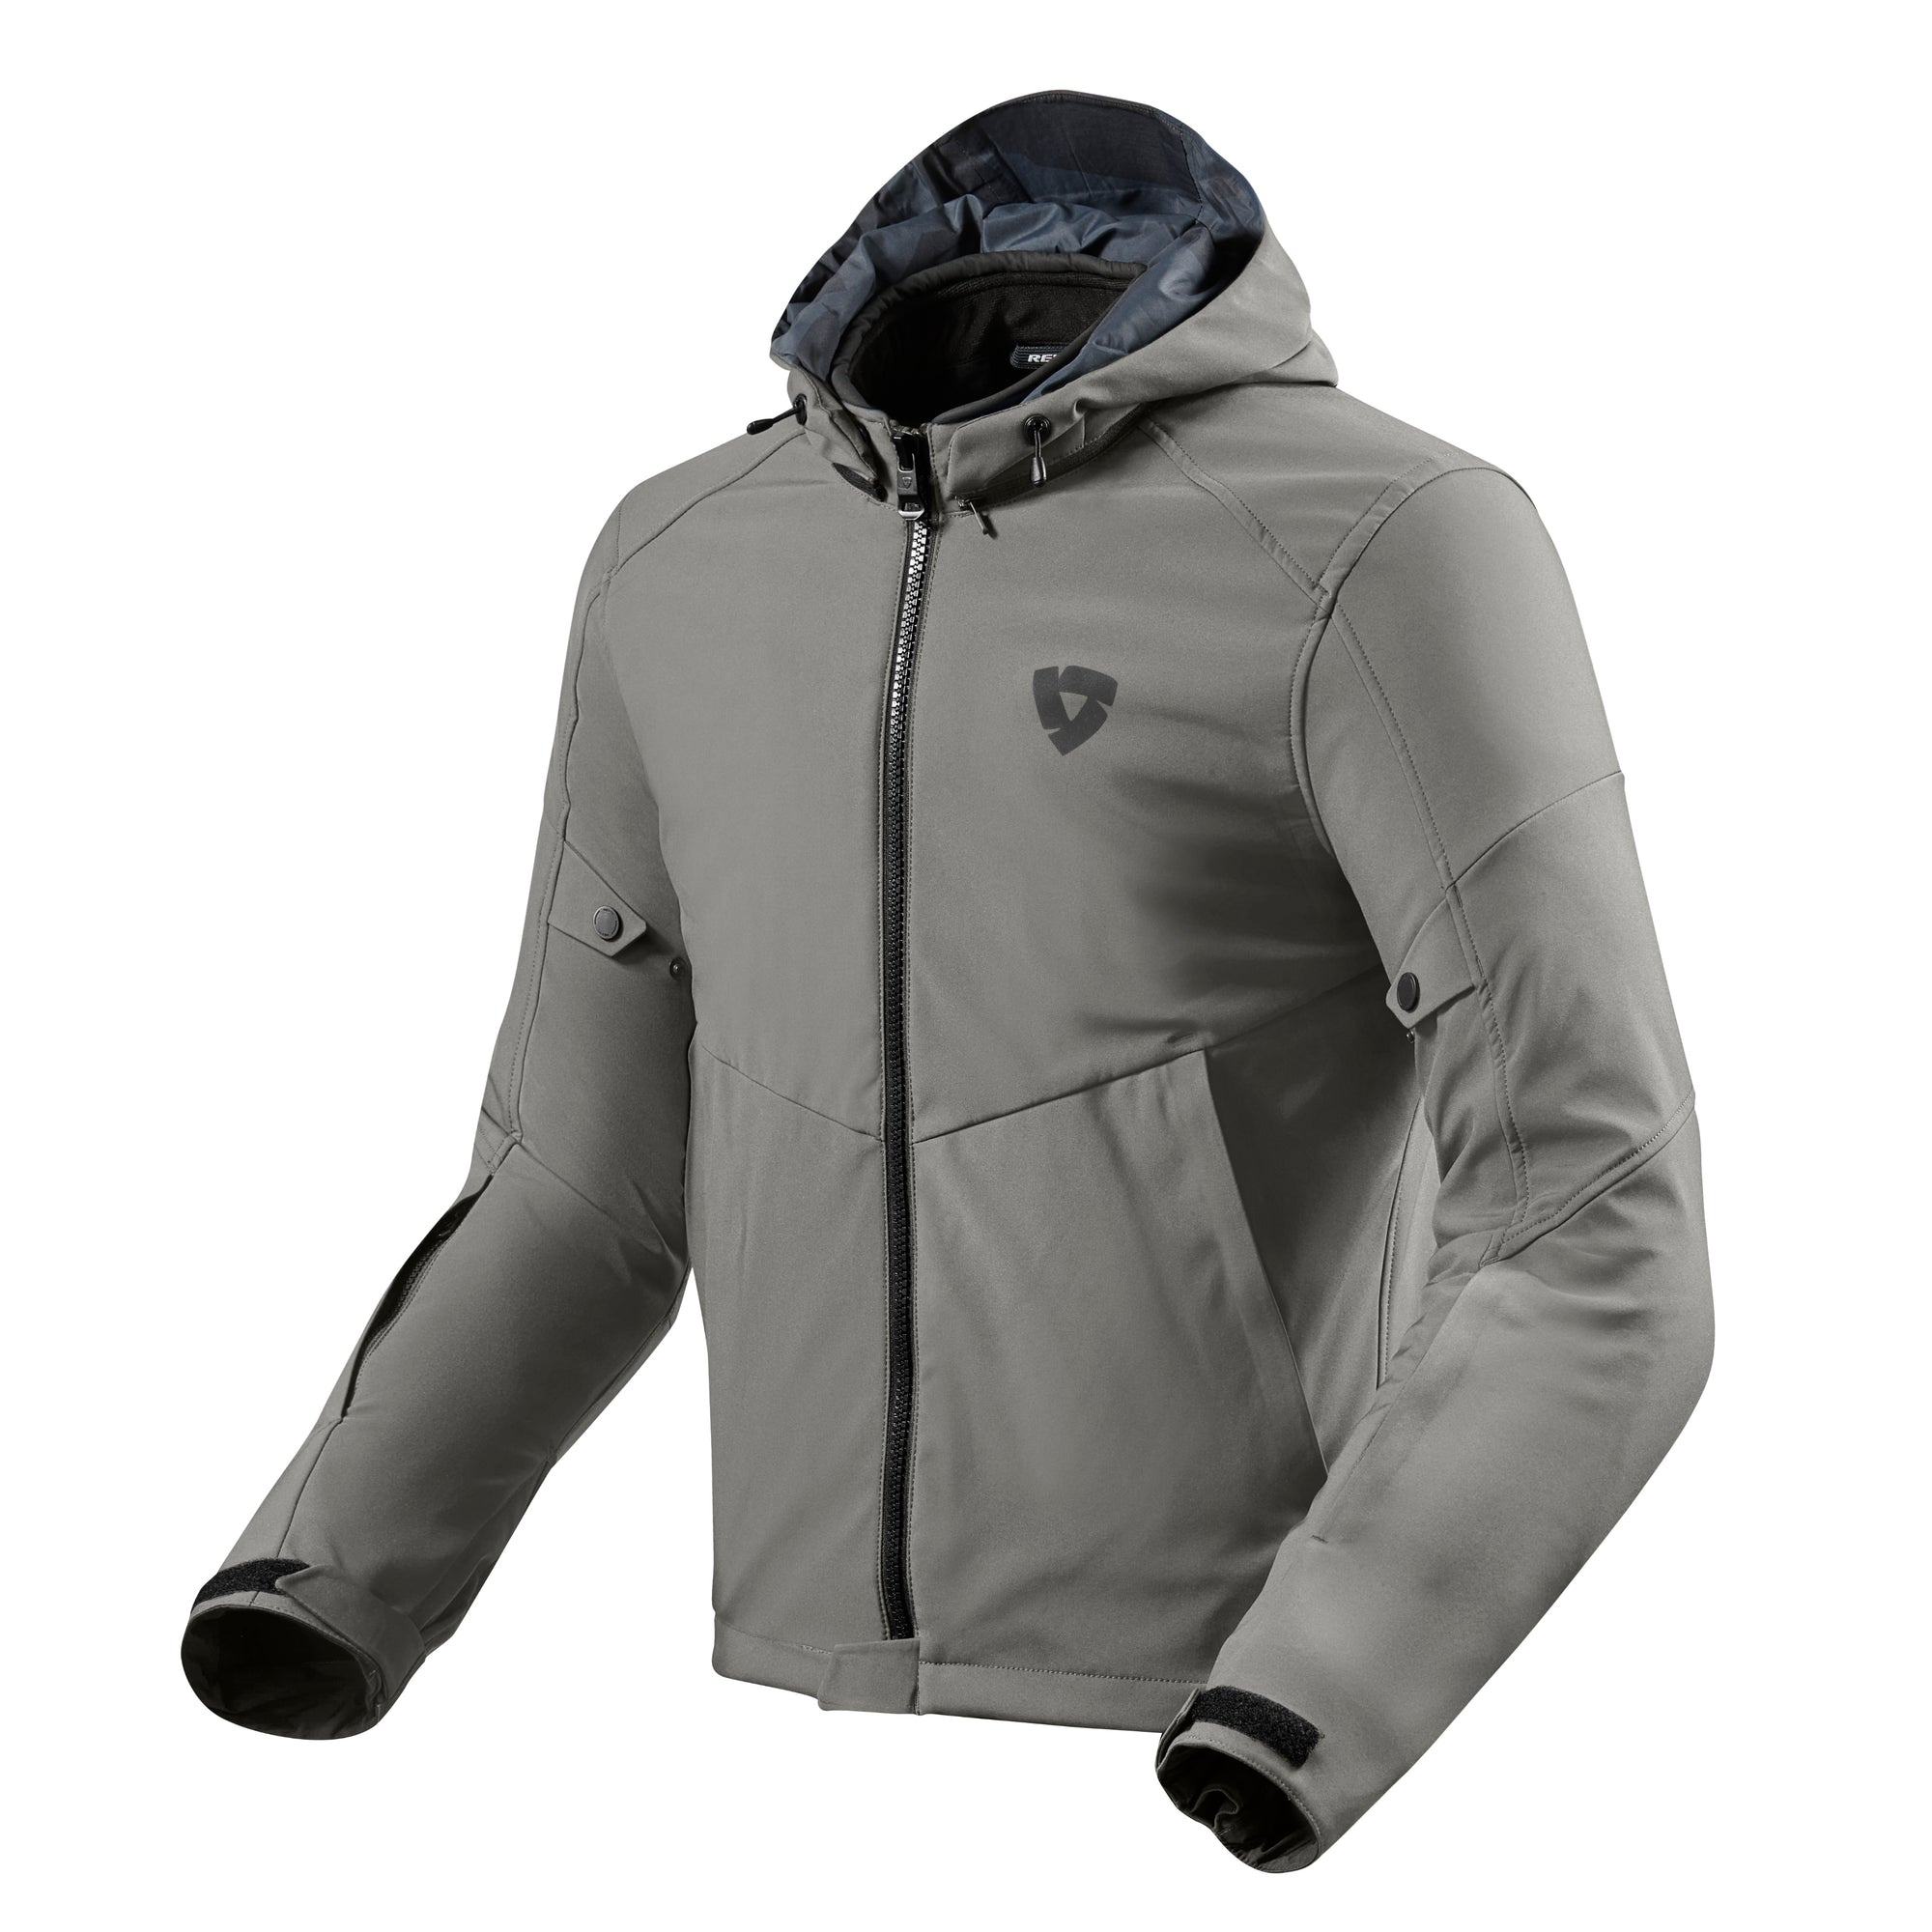 REV'IT! Afterburn H20 Hoodie - 421 Moto Gear